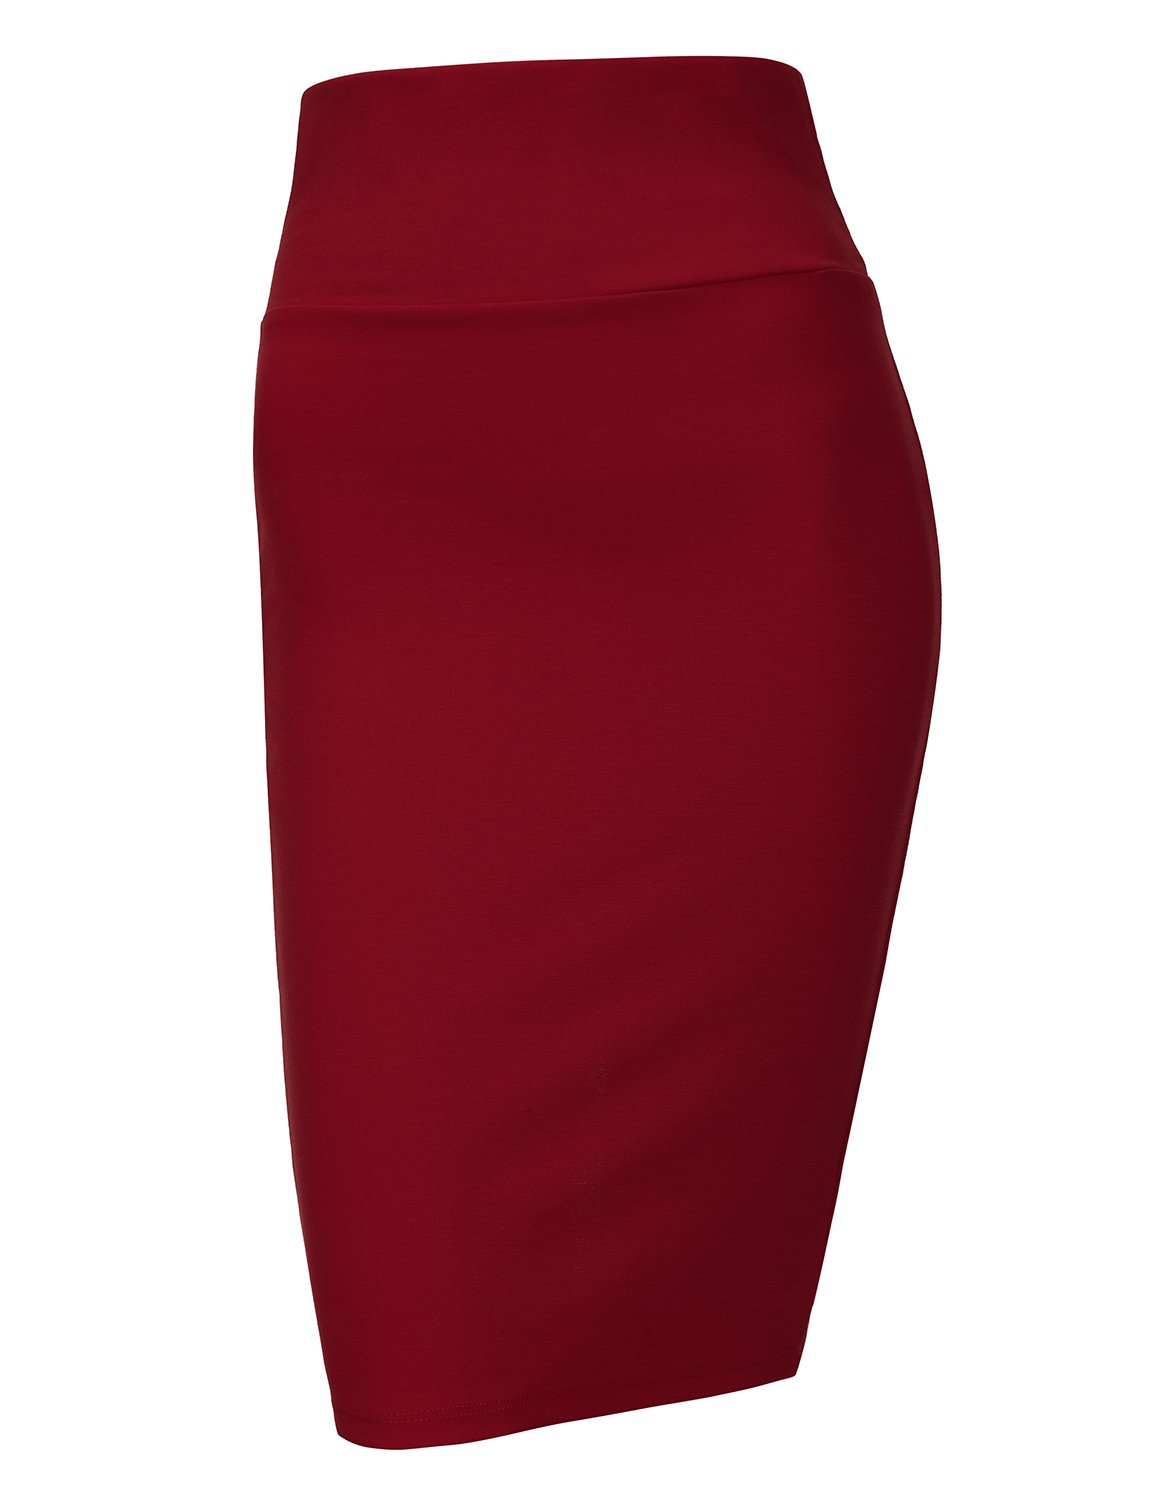 Regna X Love Coated Womens Plus Size Office Pencil Long Skirt Wine 2XL by Regna X